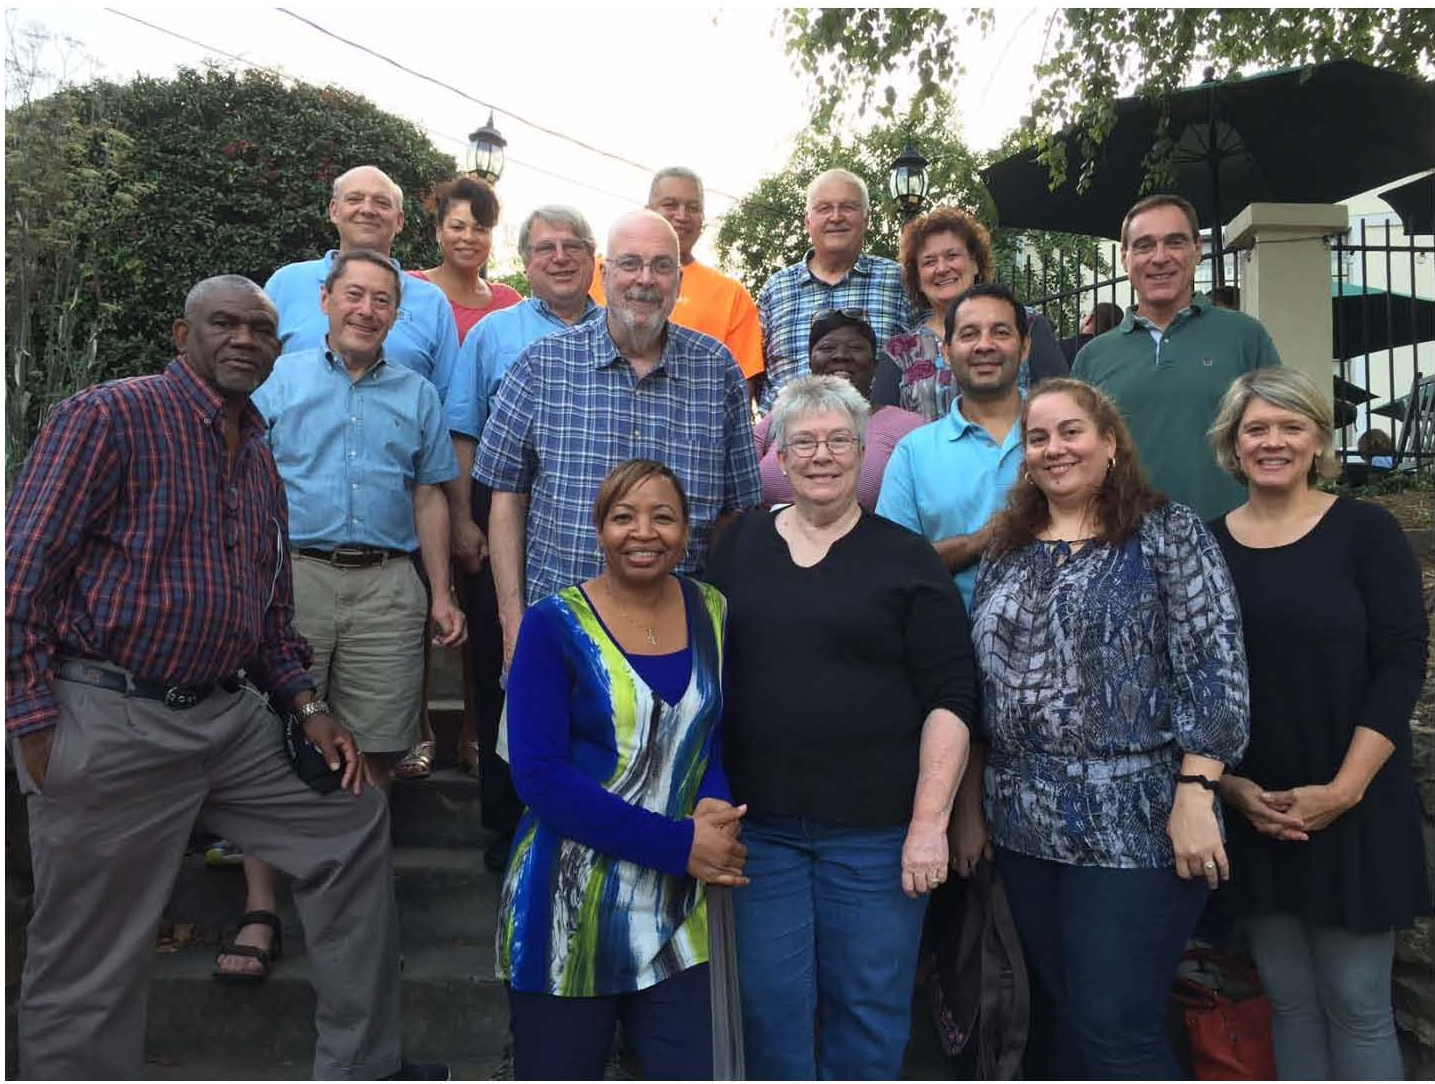 Dr. Williams @ the SERF (South East Regional Fellowship) annual gathering at Christmount in Asheville, North Carolina September 14, 2016